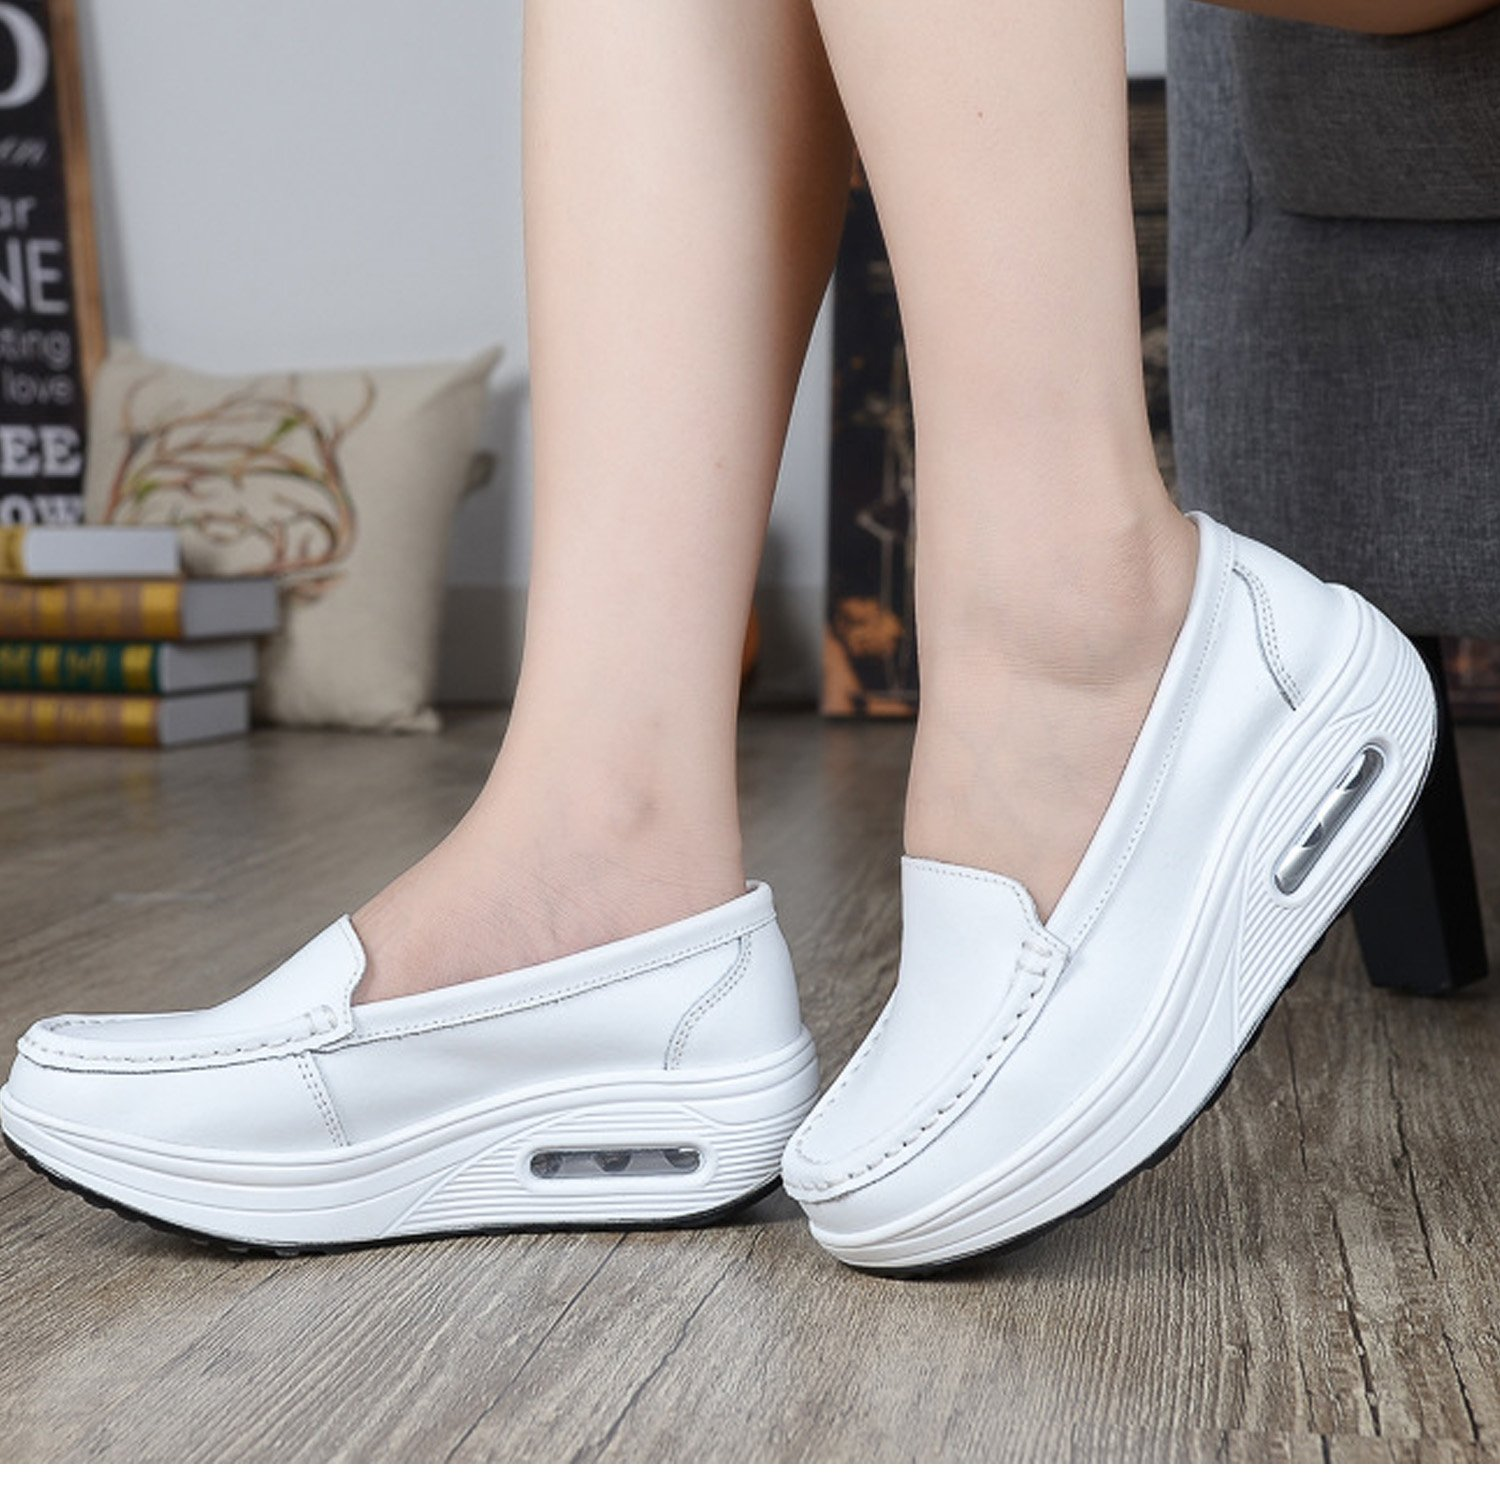 Maybest Womens Lightweight Air-Cushion Sports Nurse Shoes Mother Shoes Casual Shape Ups Walking Work Shoes FBA